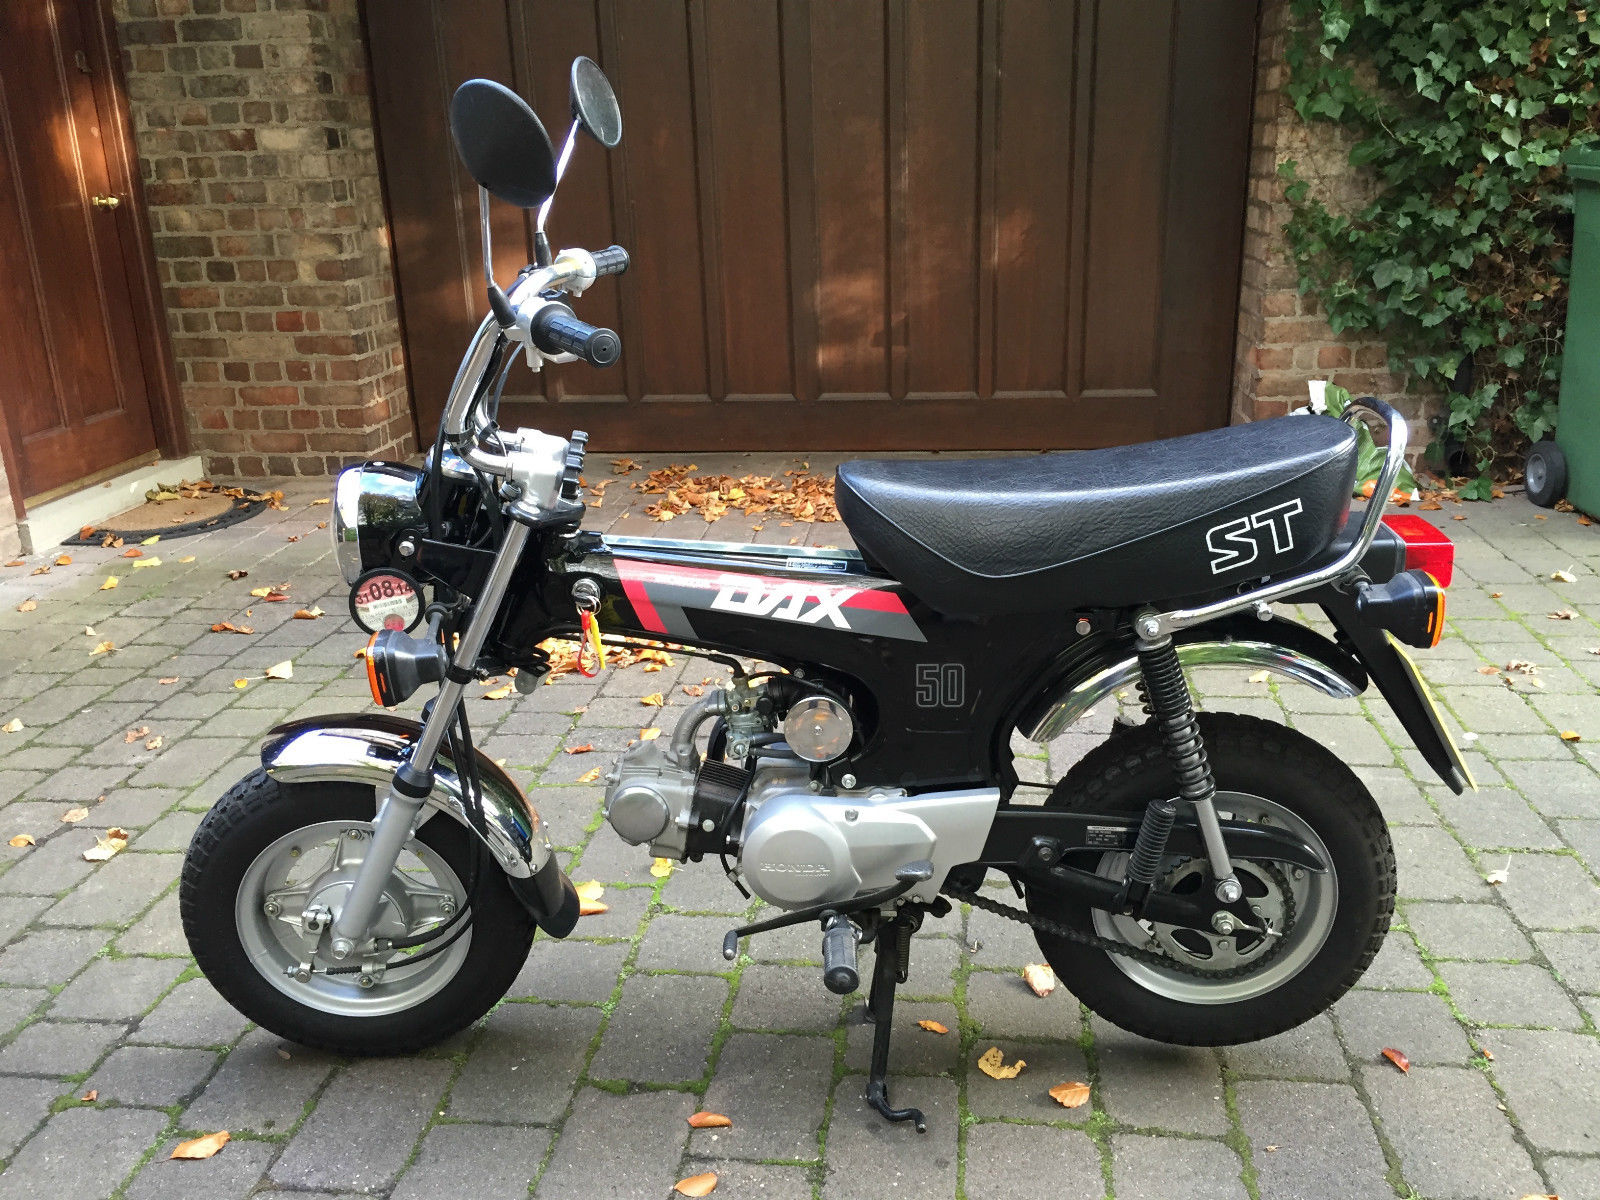 honda dax st50 k 752 miles monkey bike 50cc. Black Bedroom Furniture Sets. Home Design Ideas